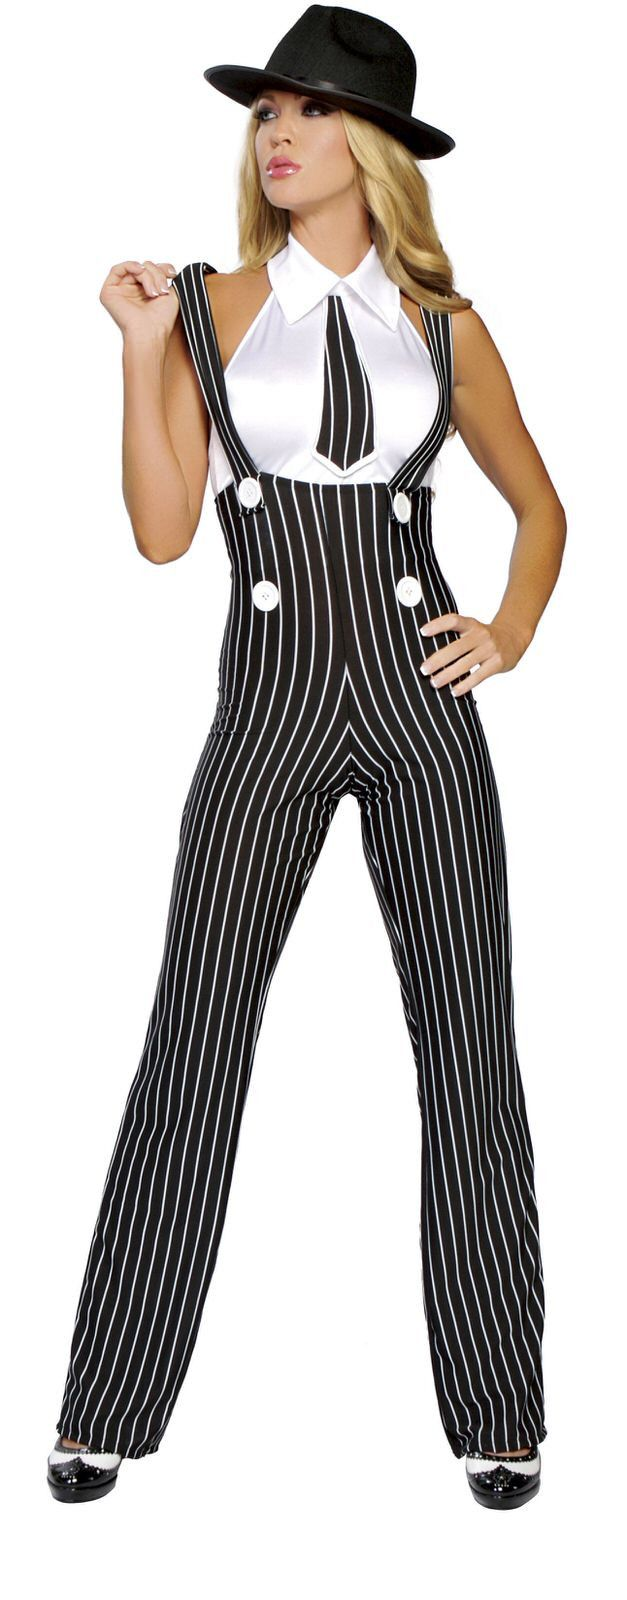 Gangsta Mama Includes High Rise Suspender Pants And Top With Built In Tie.  Shop this now YourLaMode #sexy #gangster #costumes #women #clothing